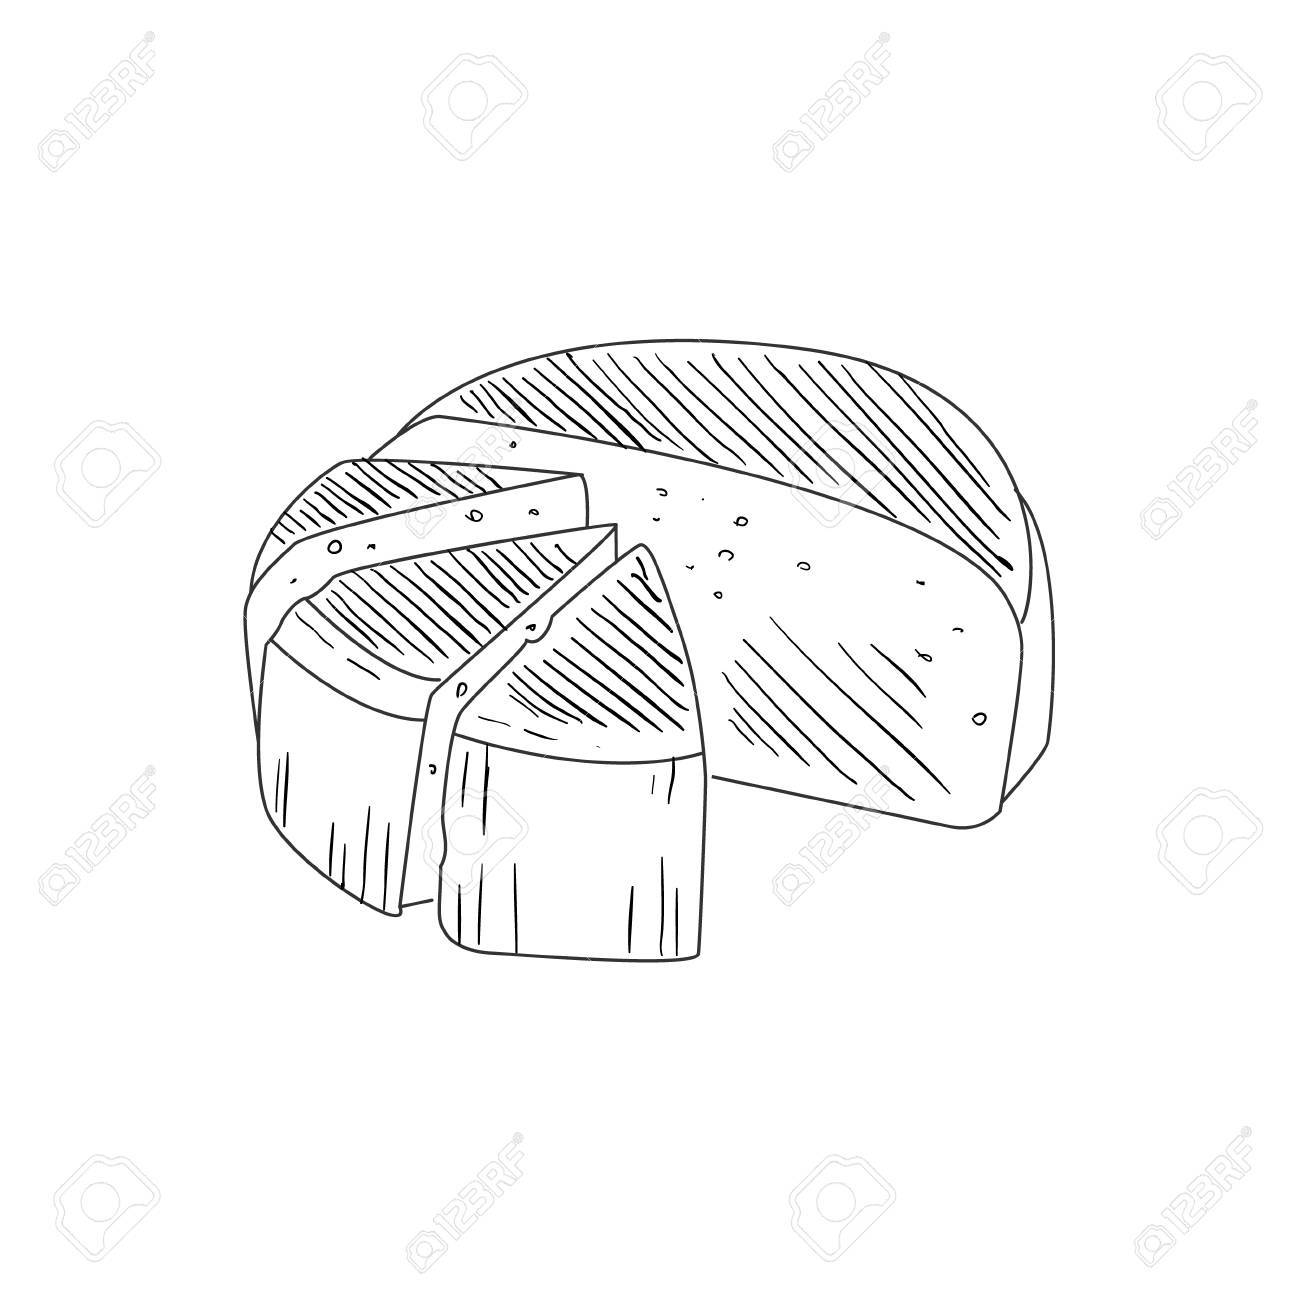 Round cheese cut in segments hand drawn realistic detailed sketch in classy simple pencil style on